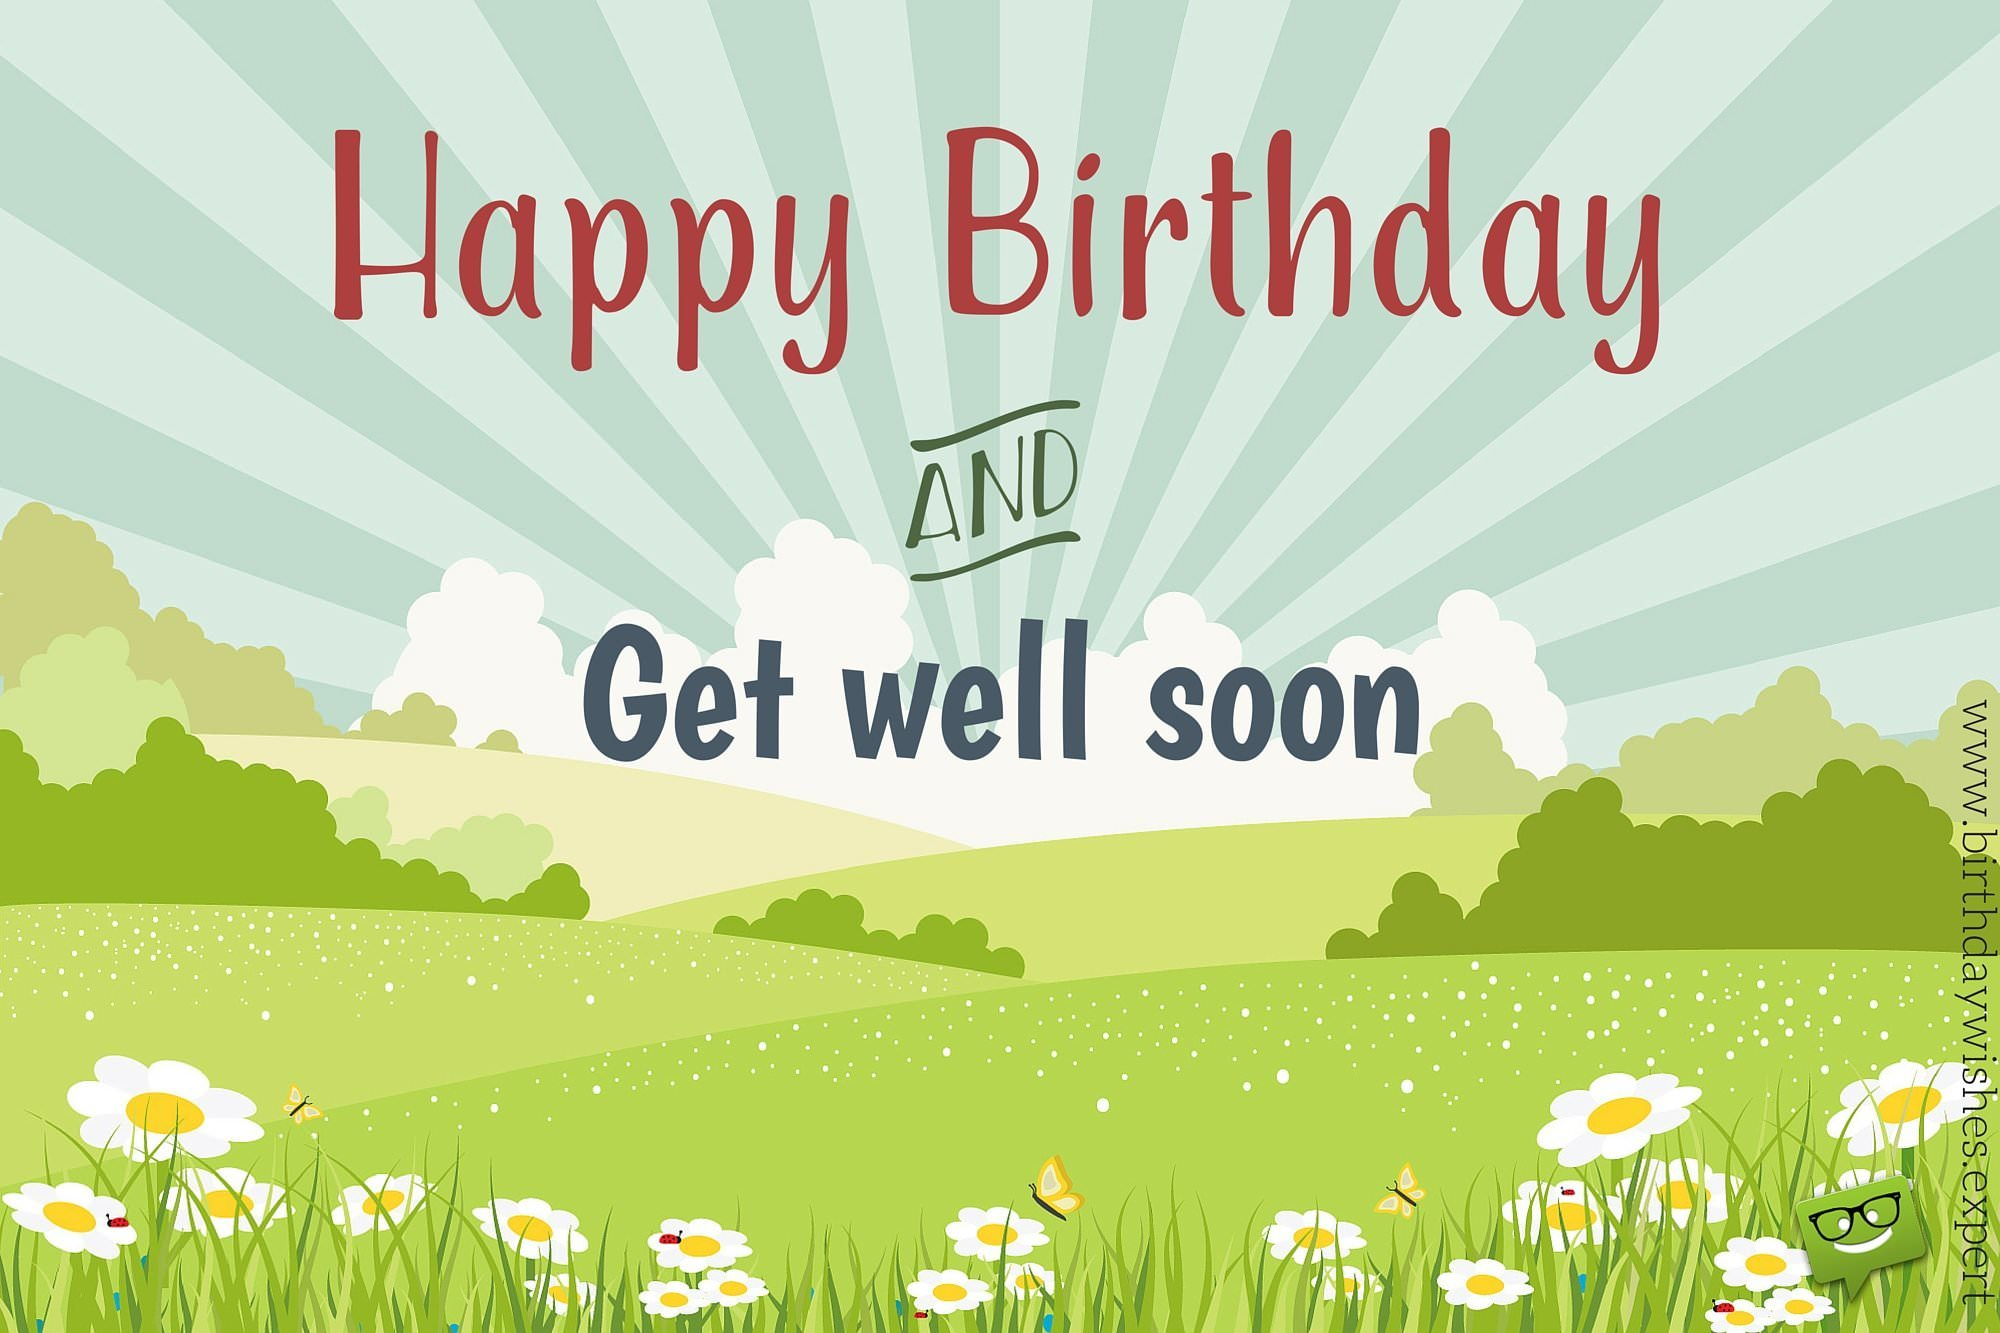 Quotes About Losing A Loved One Too Soon Birthday Wishes In Difficult Circumstances